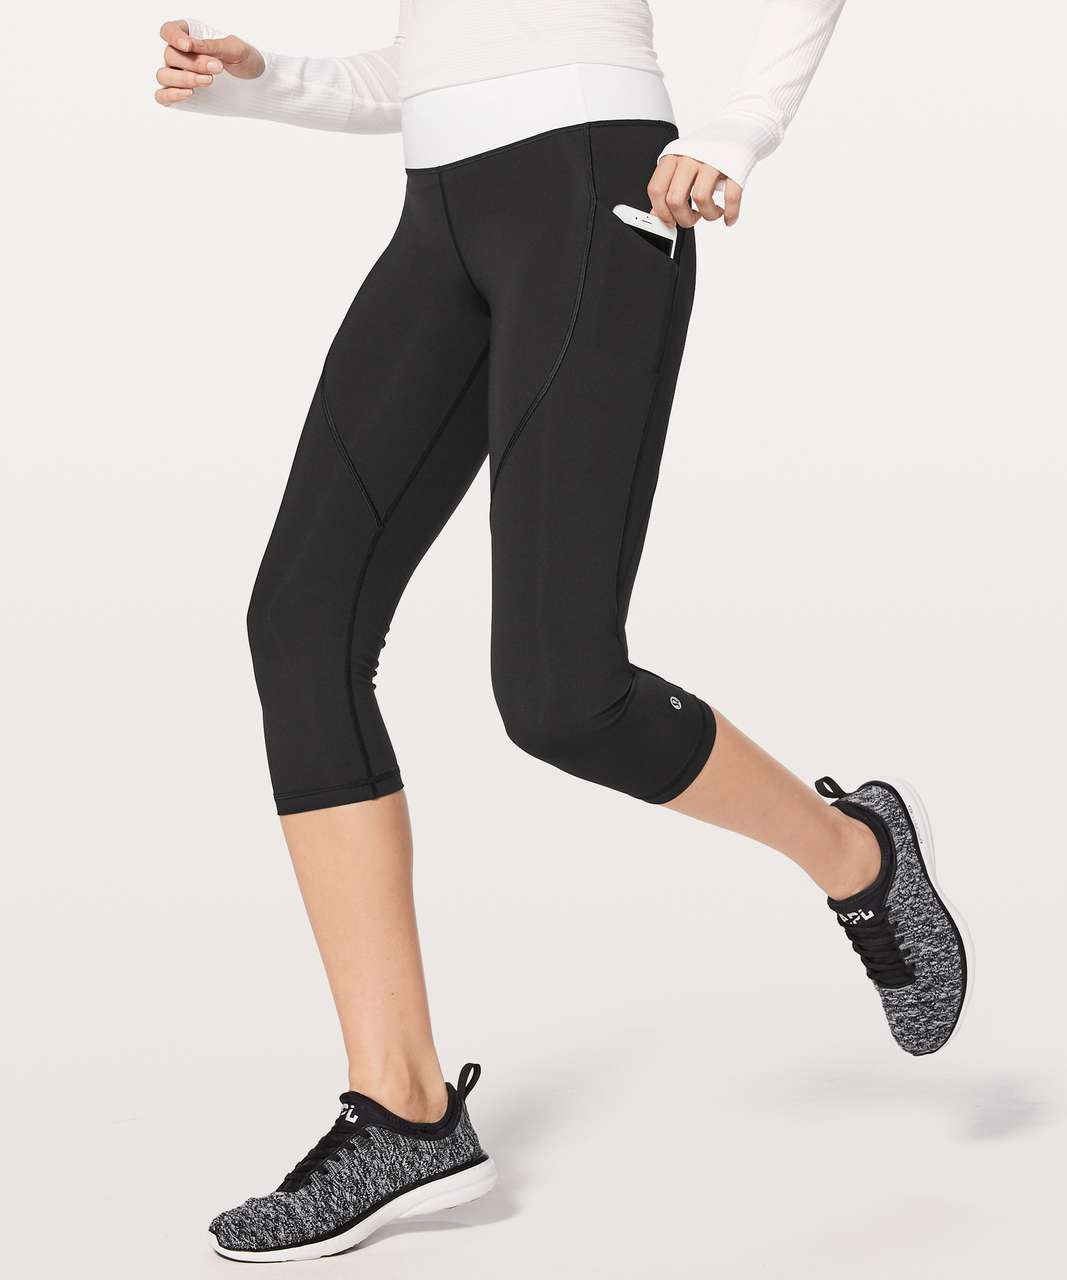 "Lululemon Quick Feet Crop 19"" - Black / White"